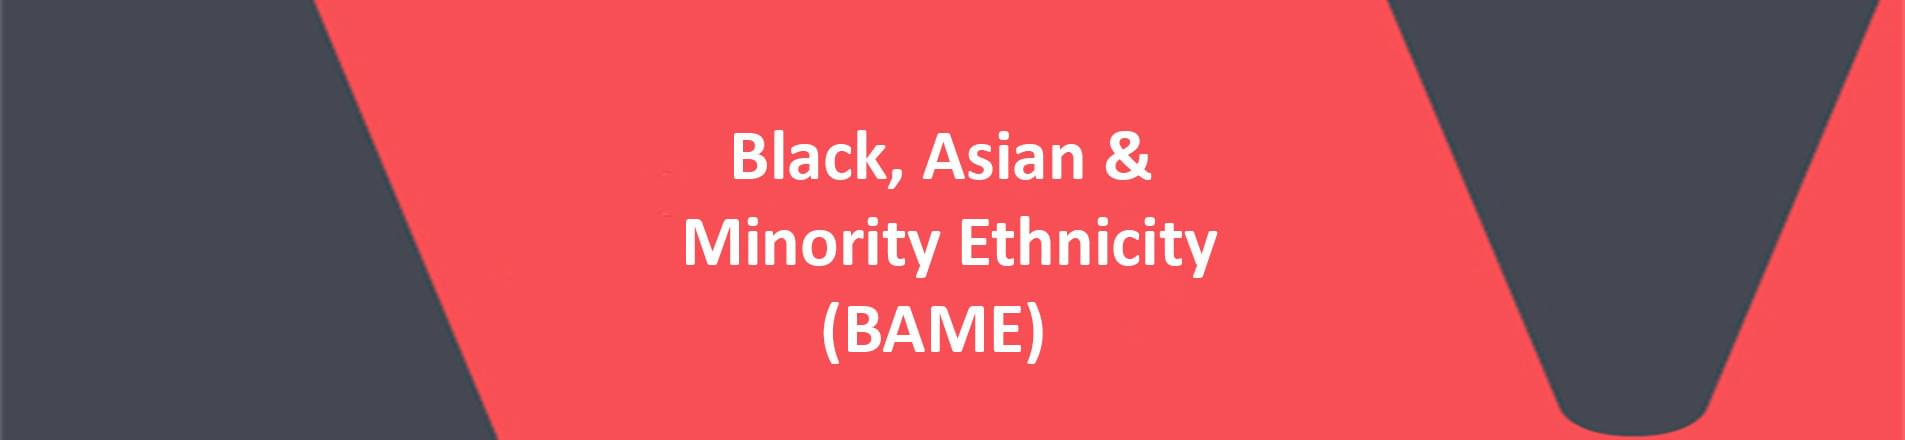 Image of the words black, asian & ethnic minority ethnicity on a red background